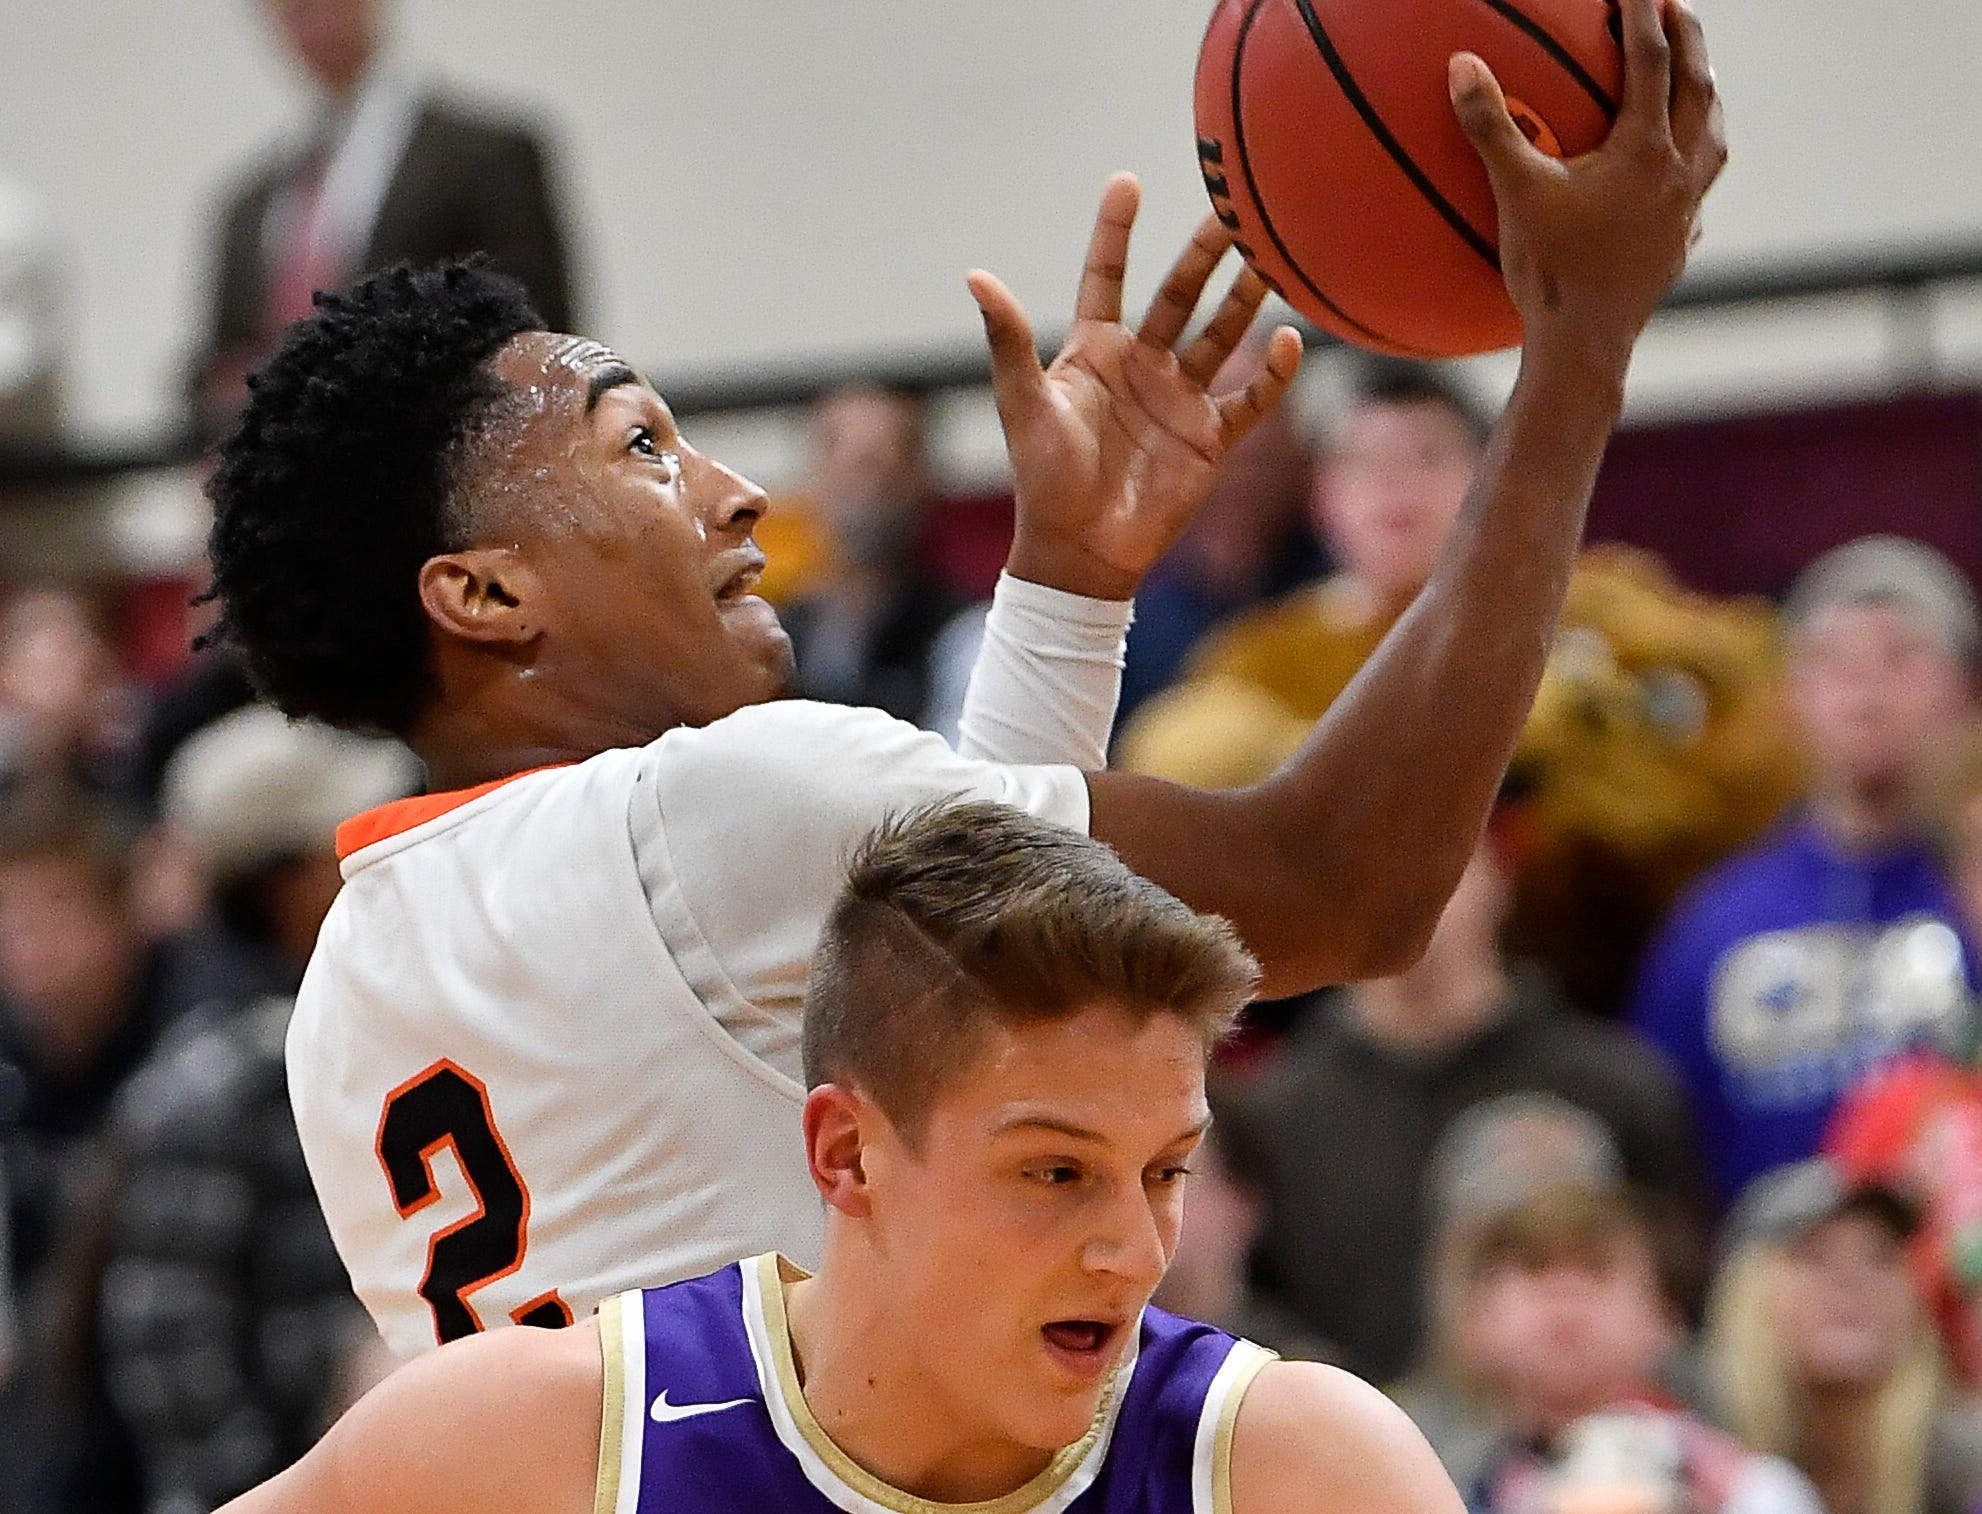 Ensworth guard Lewis McDaniel (2) shoots over CPA's McNeill Stout (5) during their game at Ensworth High School Tuesday, Dec. 11, 2018, in Nashville, Tenn.